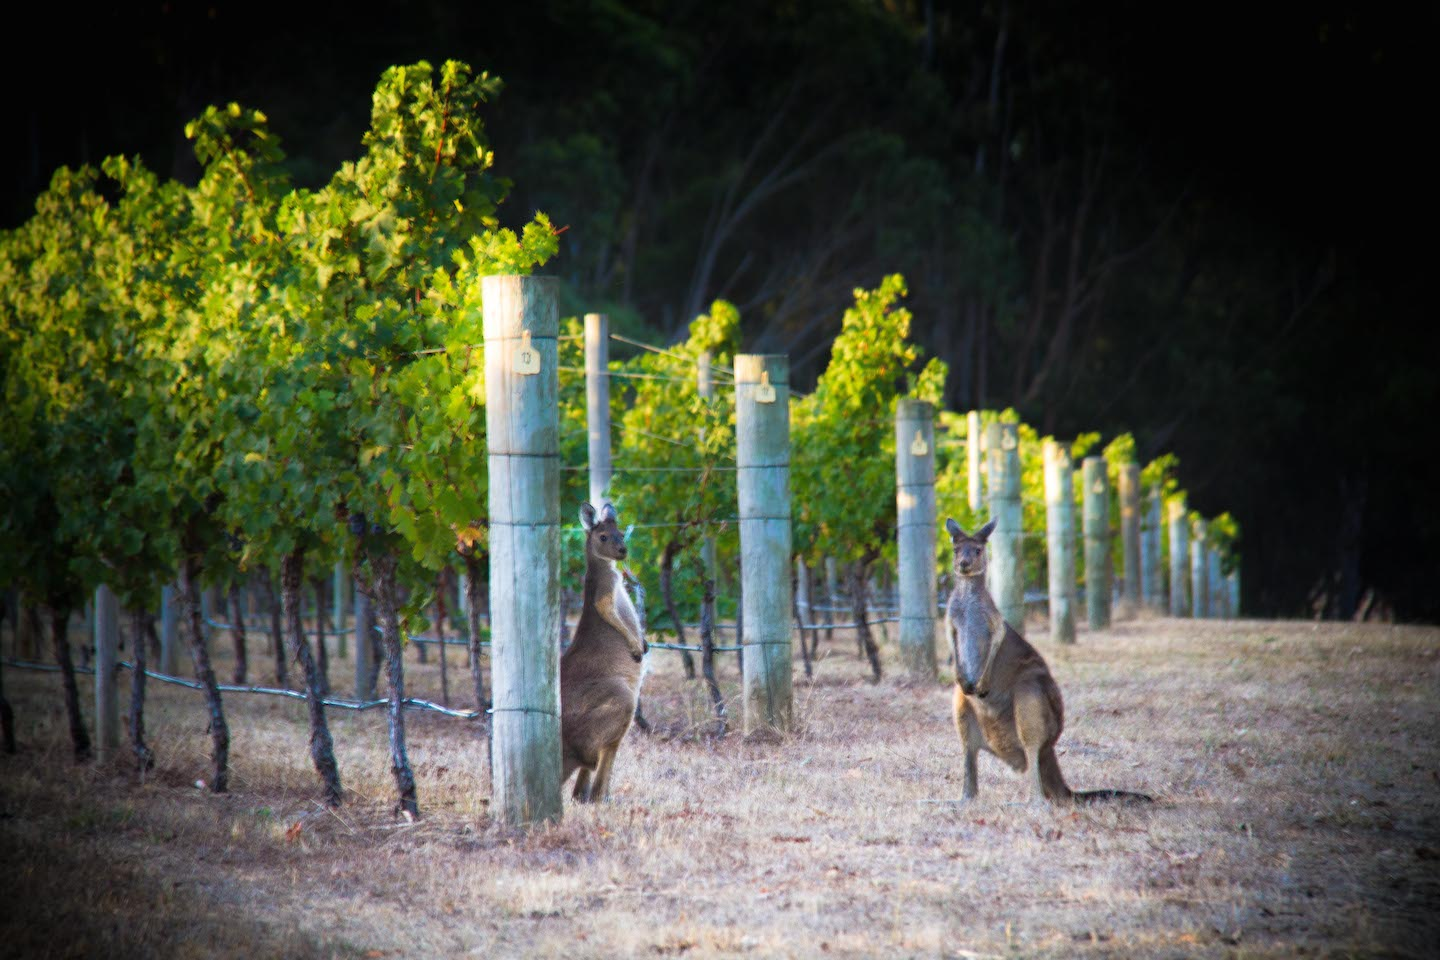 Kangaroos in the Cape Mentellle vineyard on Margaret River Best of the Best Wine Tour